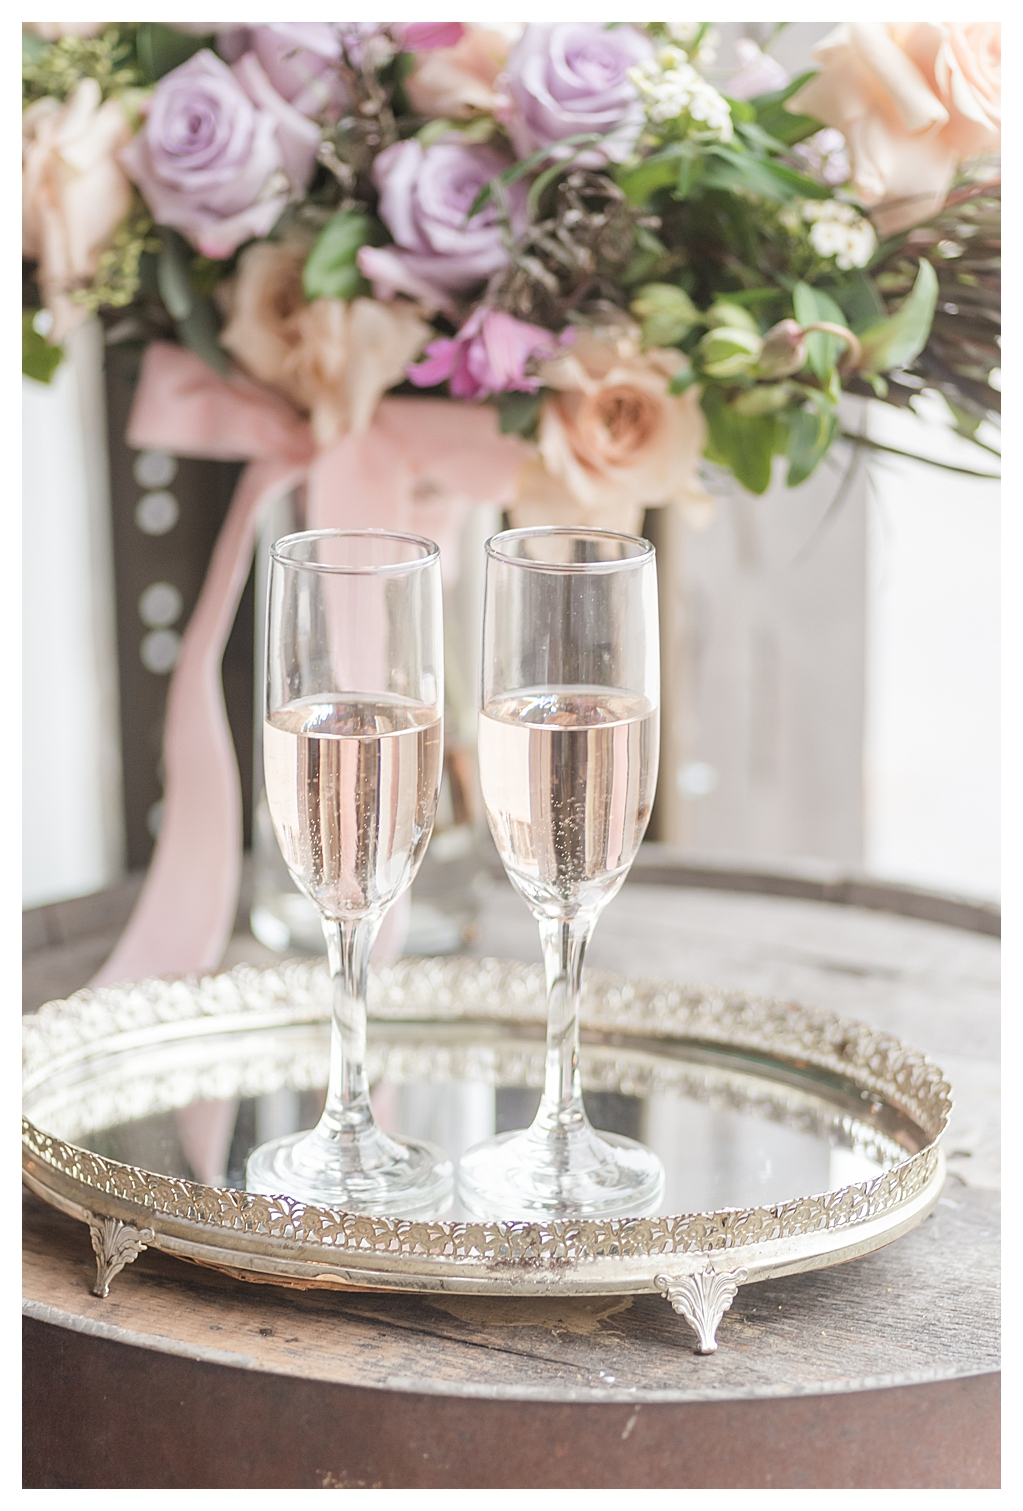 Wedding Photography Wedding Reception Detail Photos What Brides Forget in the Wedding Day Timeline_1285.jpg